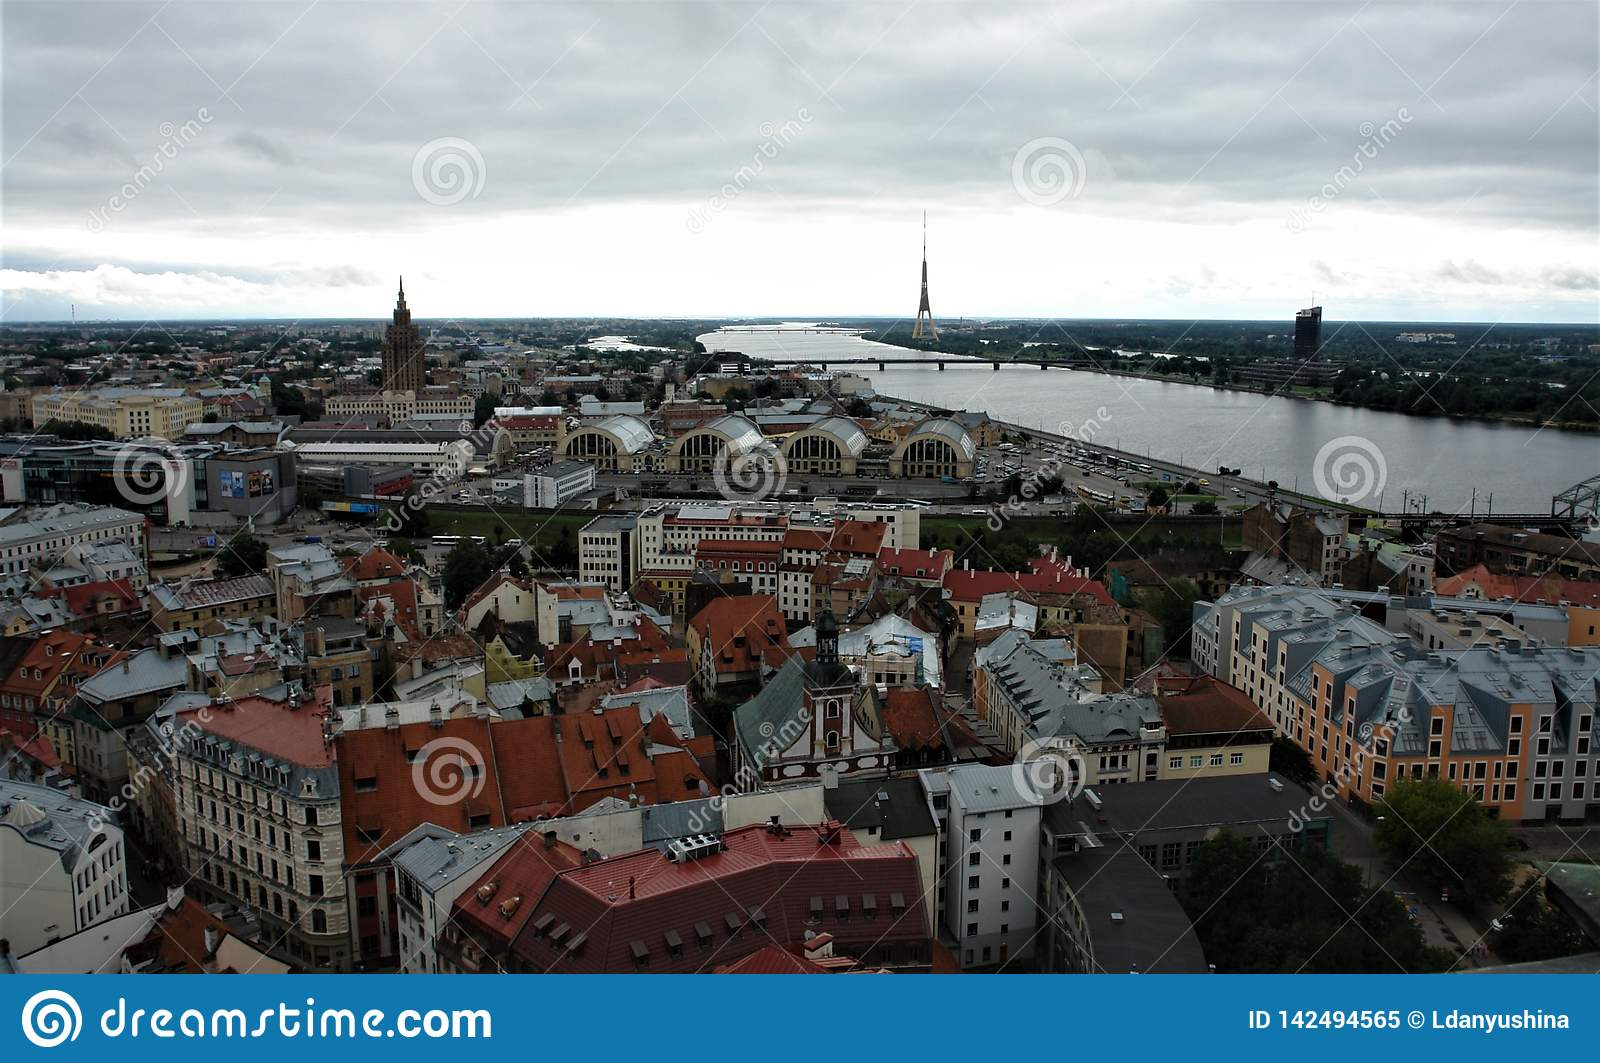 Latvia, Riga, view of the city from above.